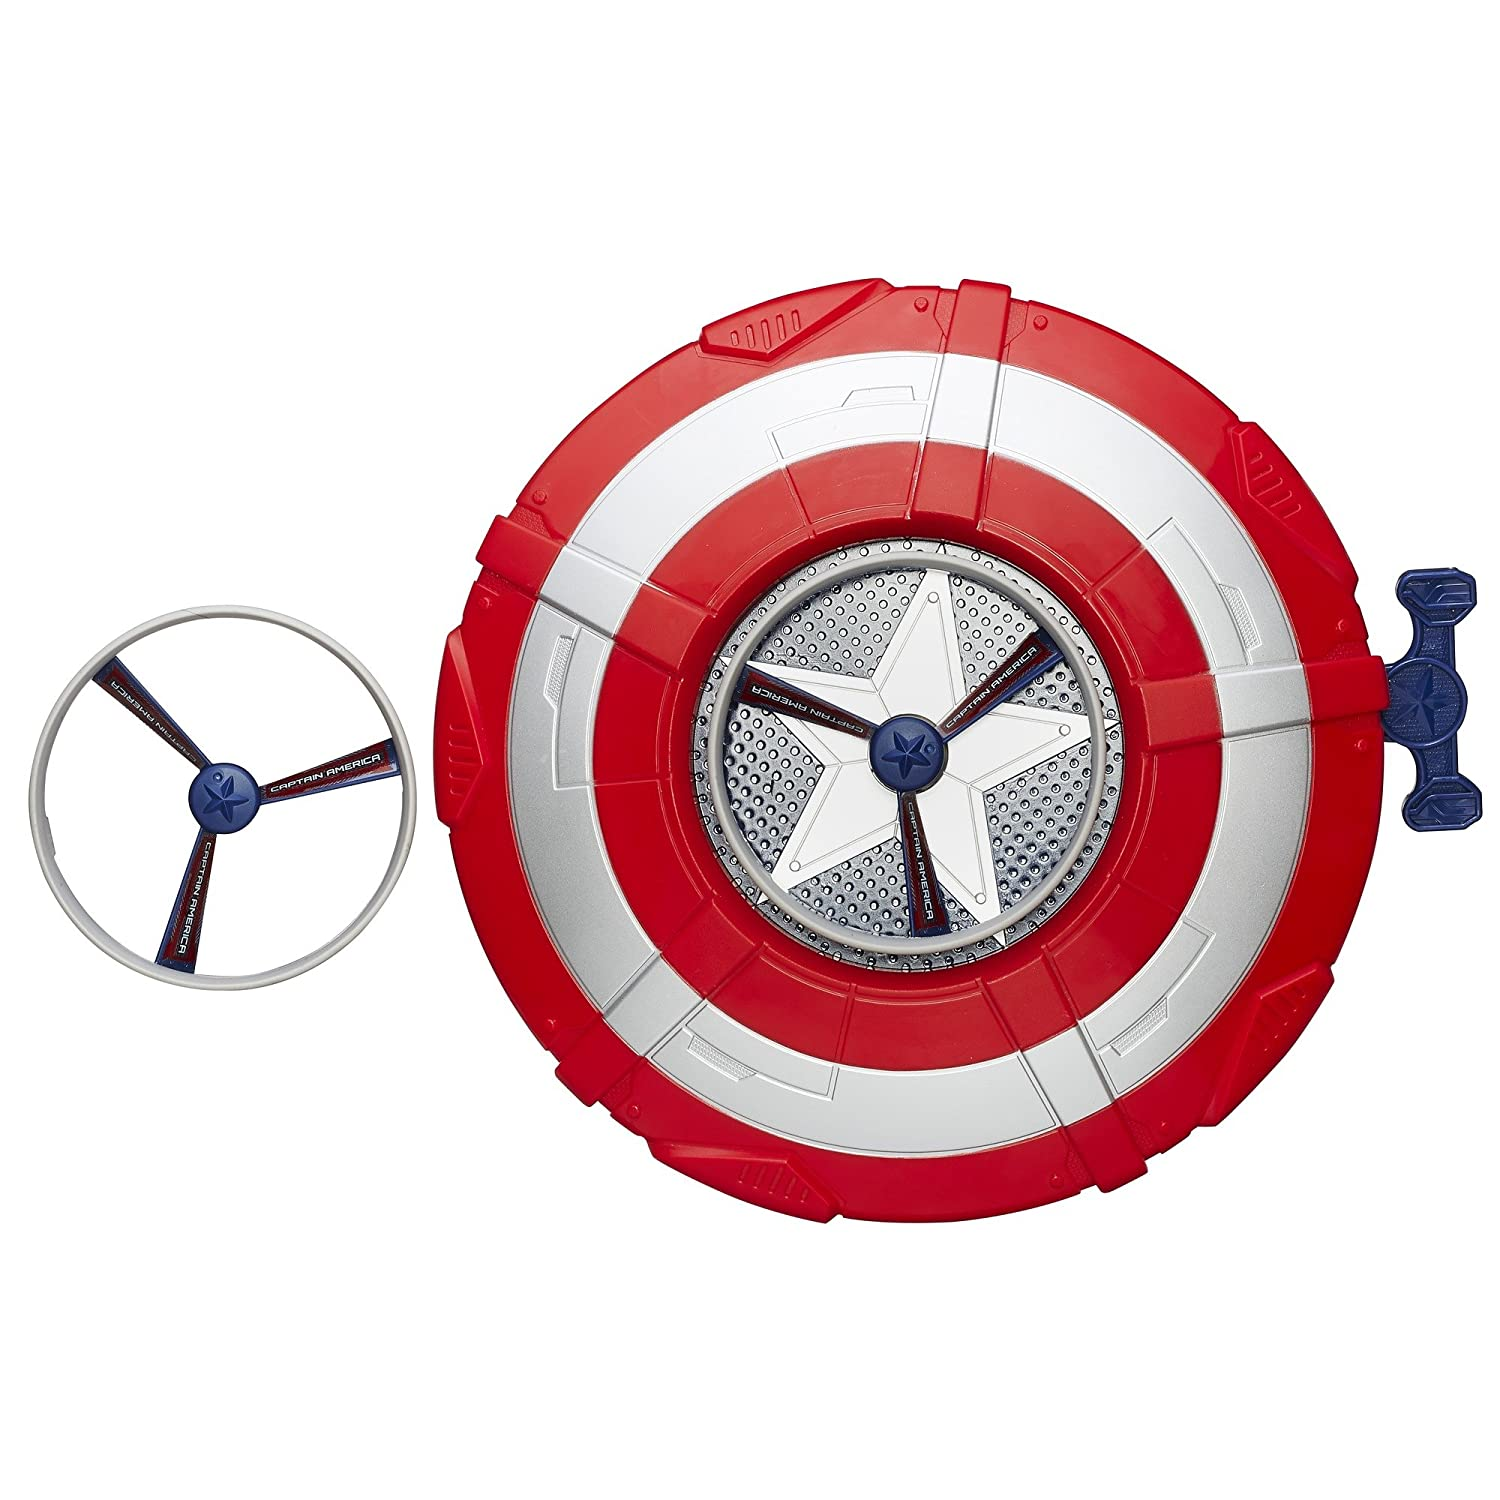 Hasbro Marvel Avengers Age of Ultron Captain America Star Launch Shield by Marvel